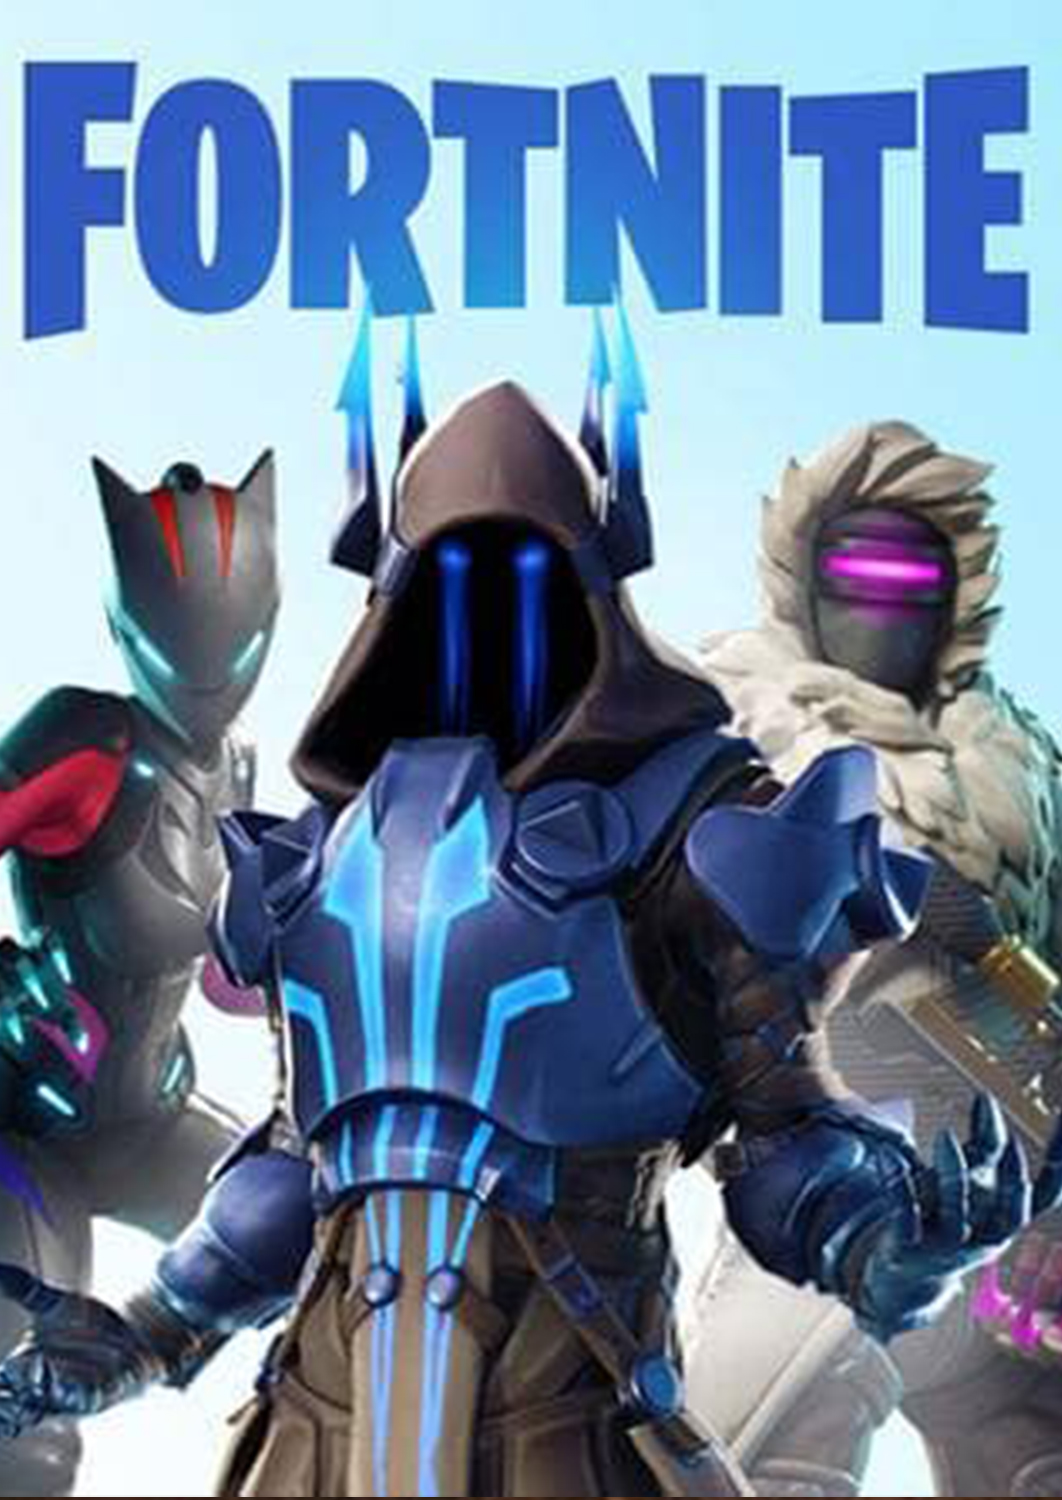 fortnite-cover.jpg